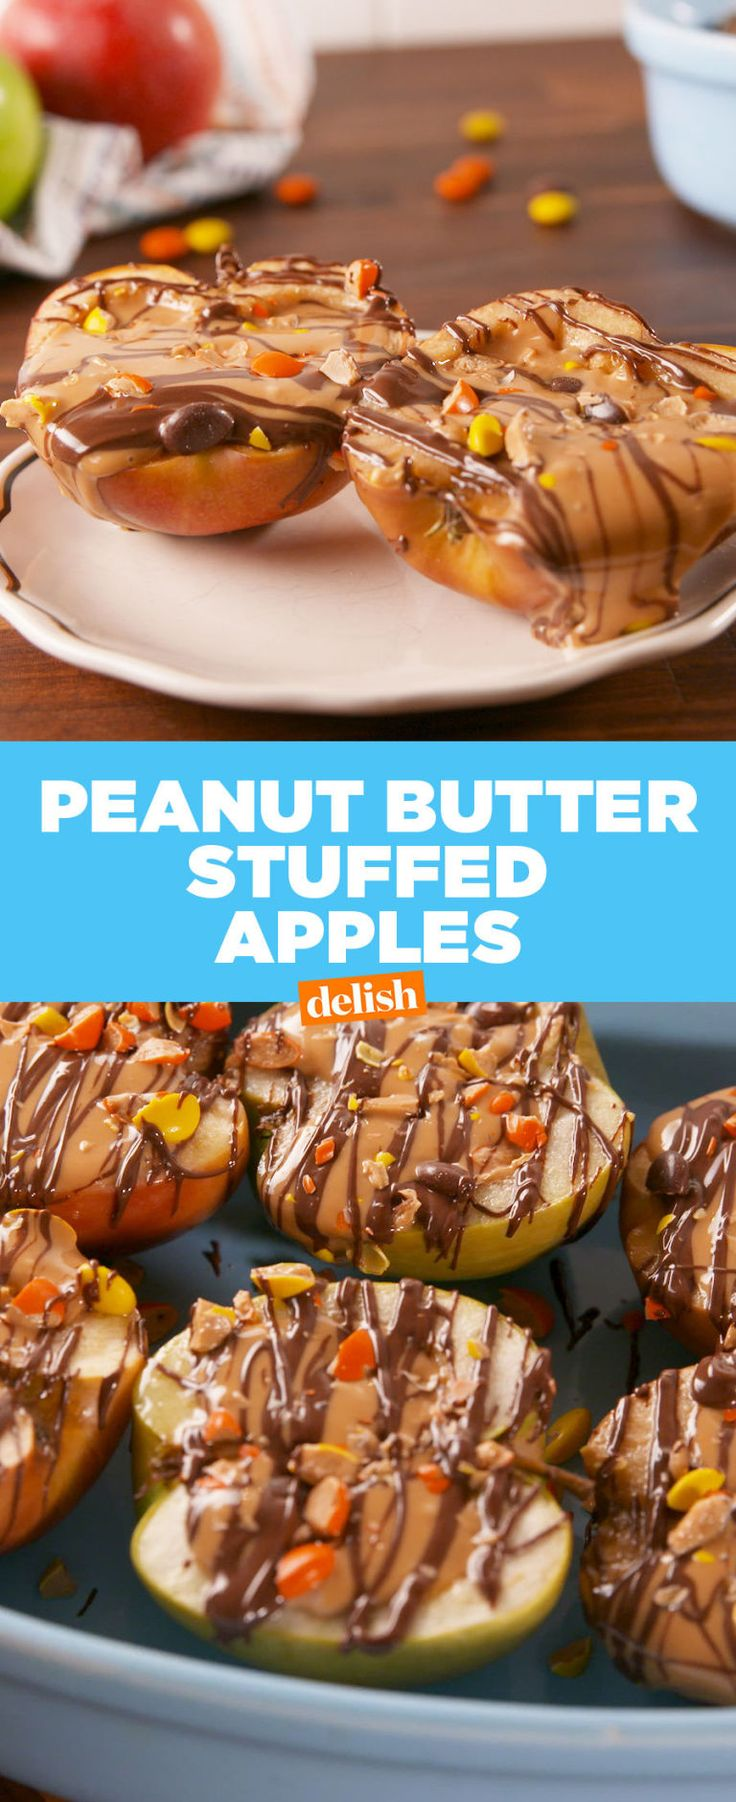 Peanut Butter Stuffed Apples